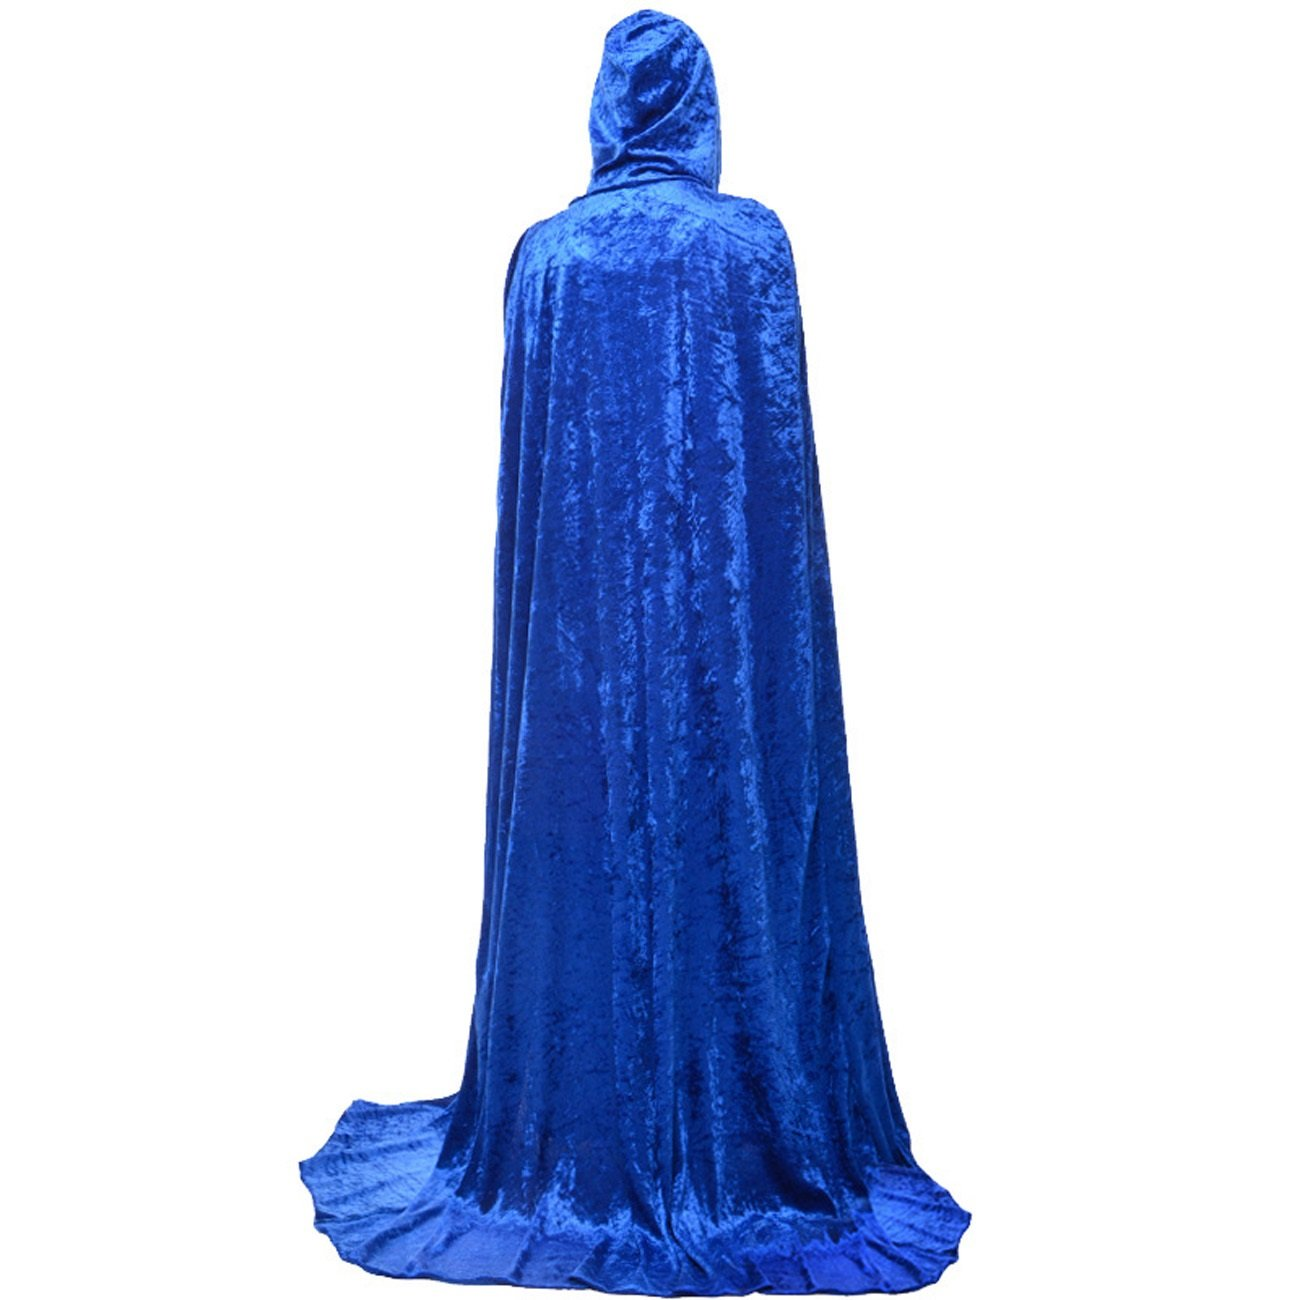 Gameyly Unisex Death Hooded Cape Halloween Velevt Full Length Cloak Cosplay Costumes Gameyly-108984-Black